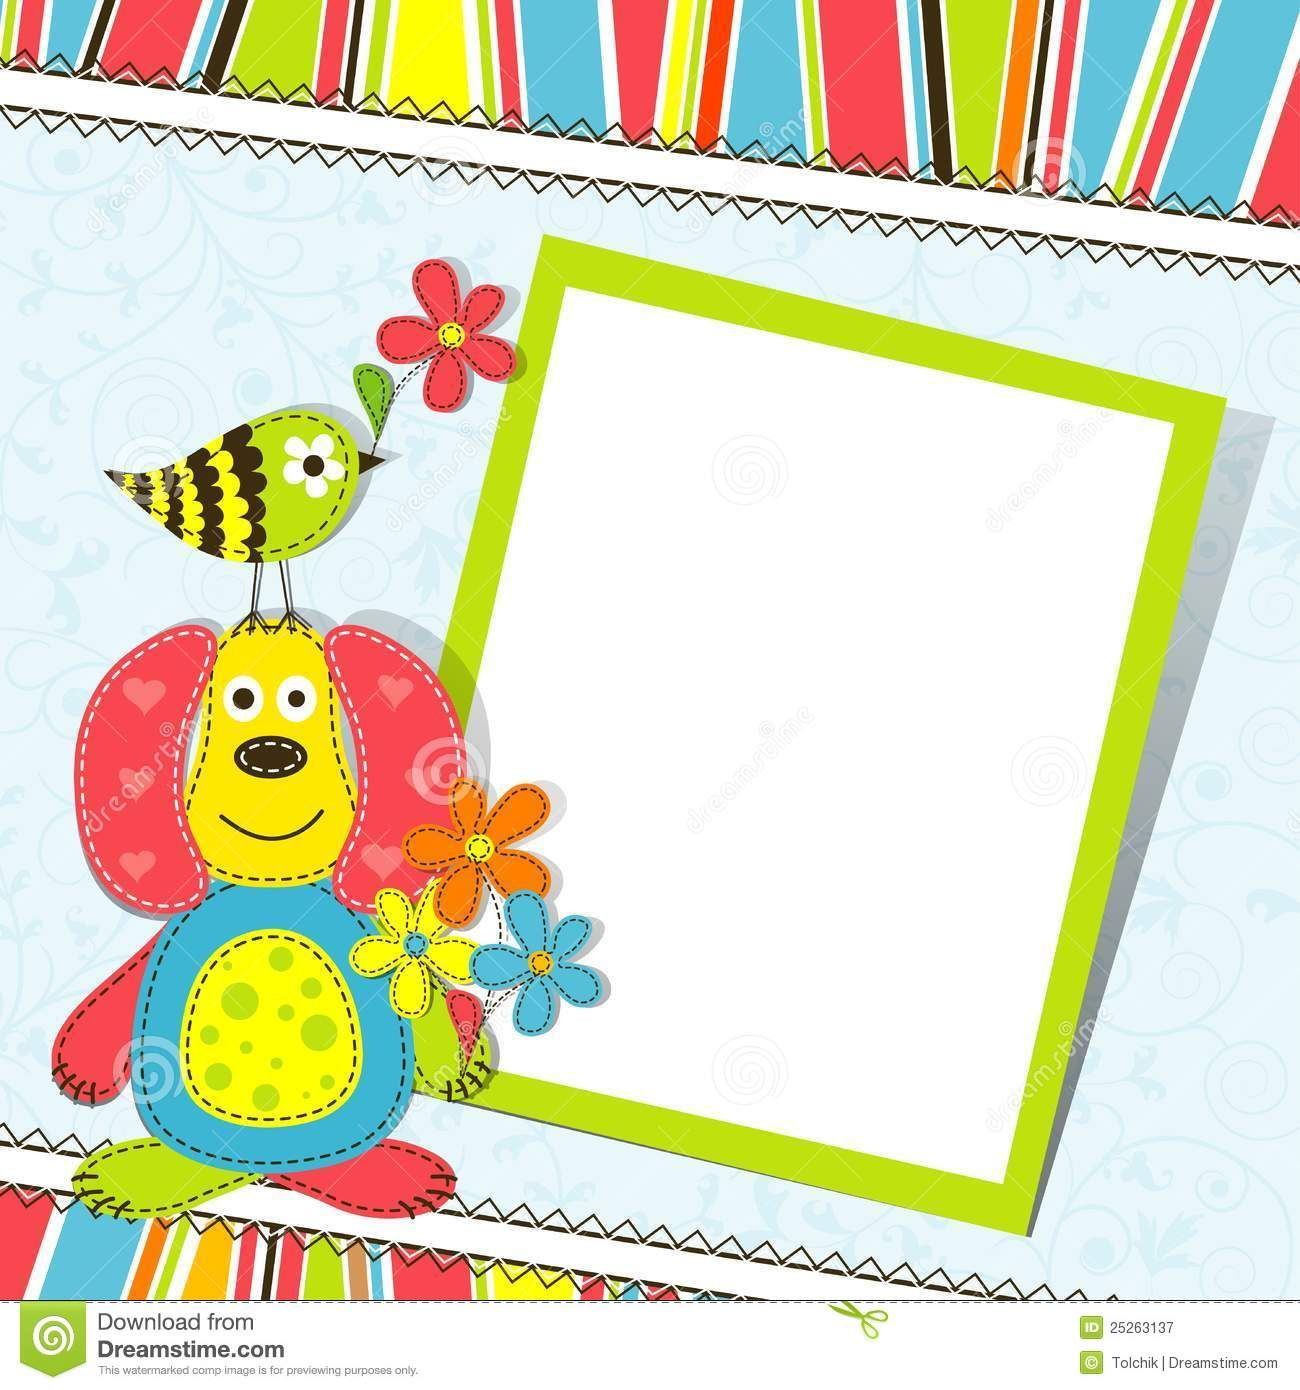 Template For Birthday Card My Birthday Pinterest – Free Template Birthday Card